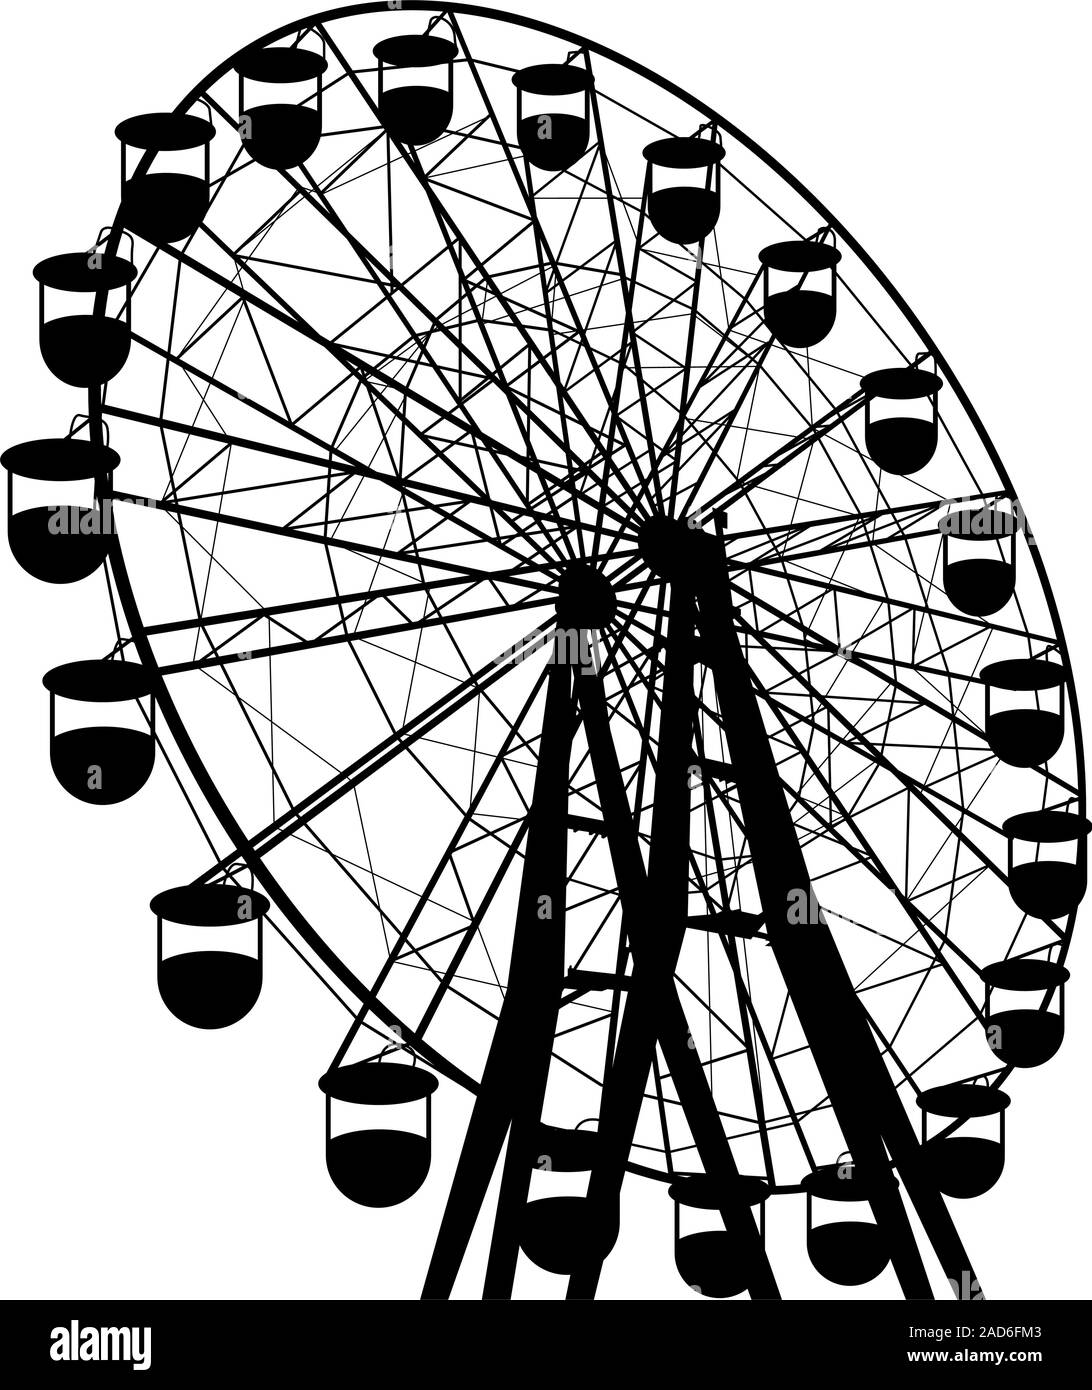 Atraktsion Silhouette grande roue colorée. Vector illustration. Illustration de Vecteur